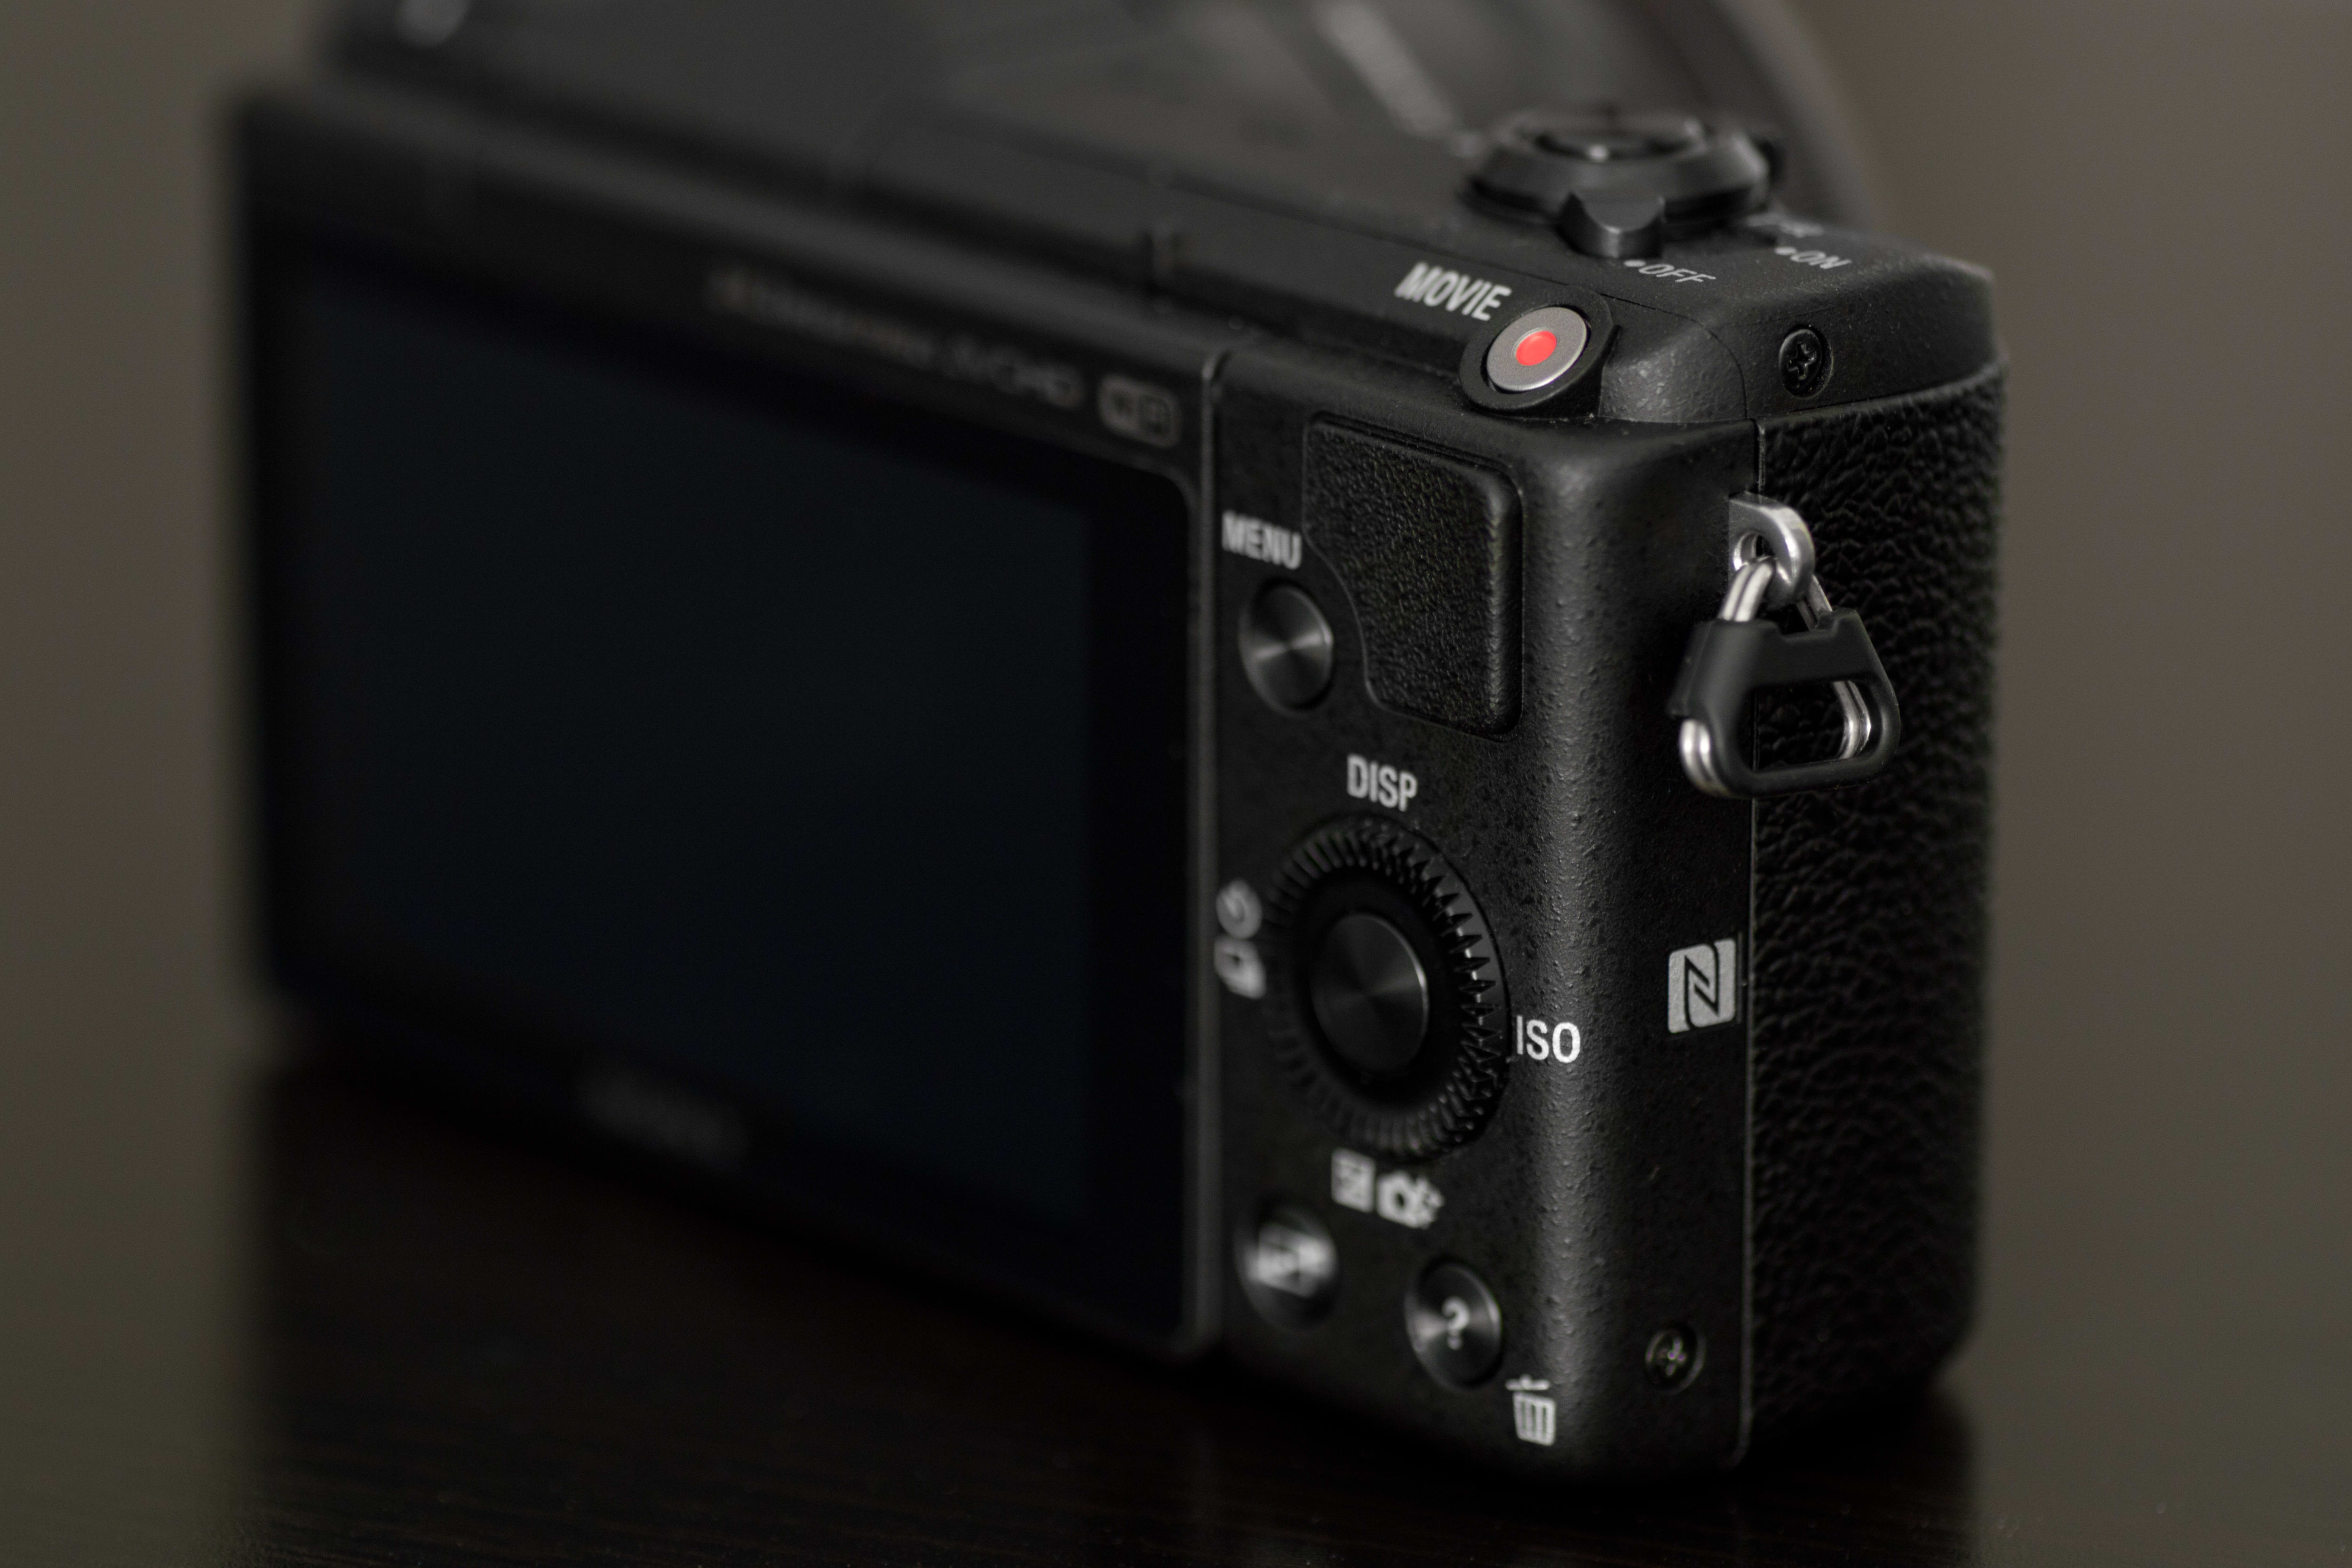 Shot of the NFC logo on the A5100.